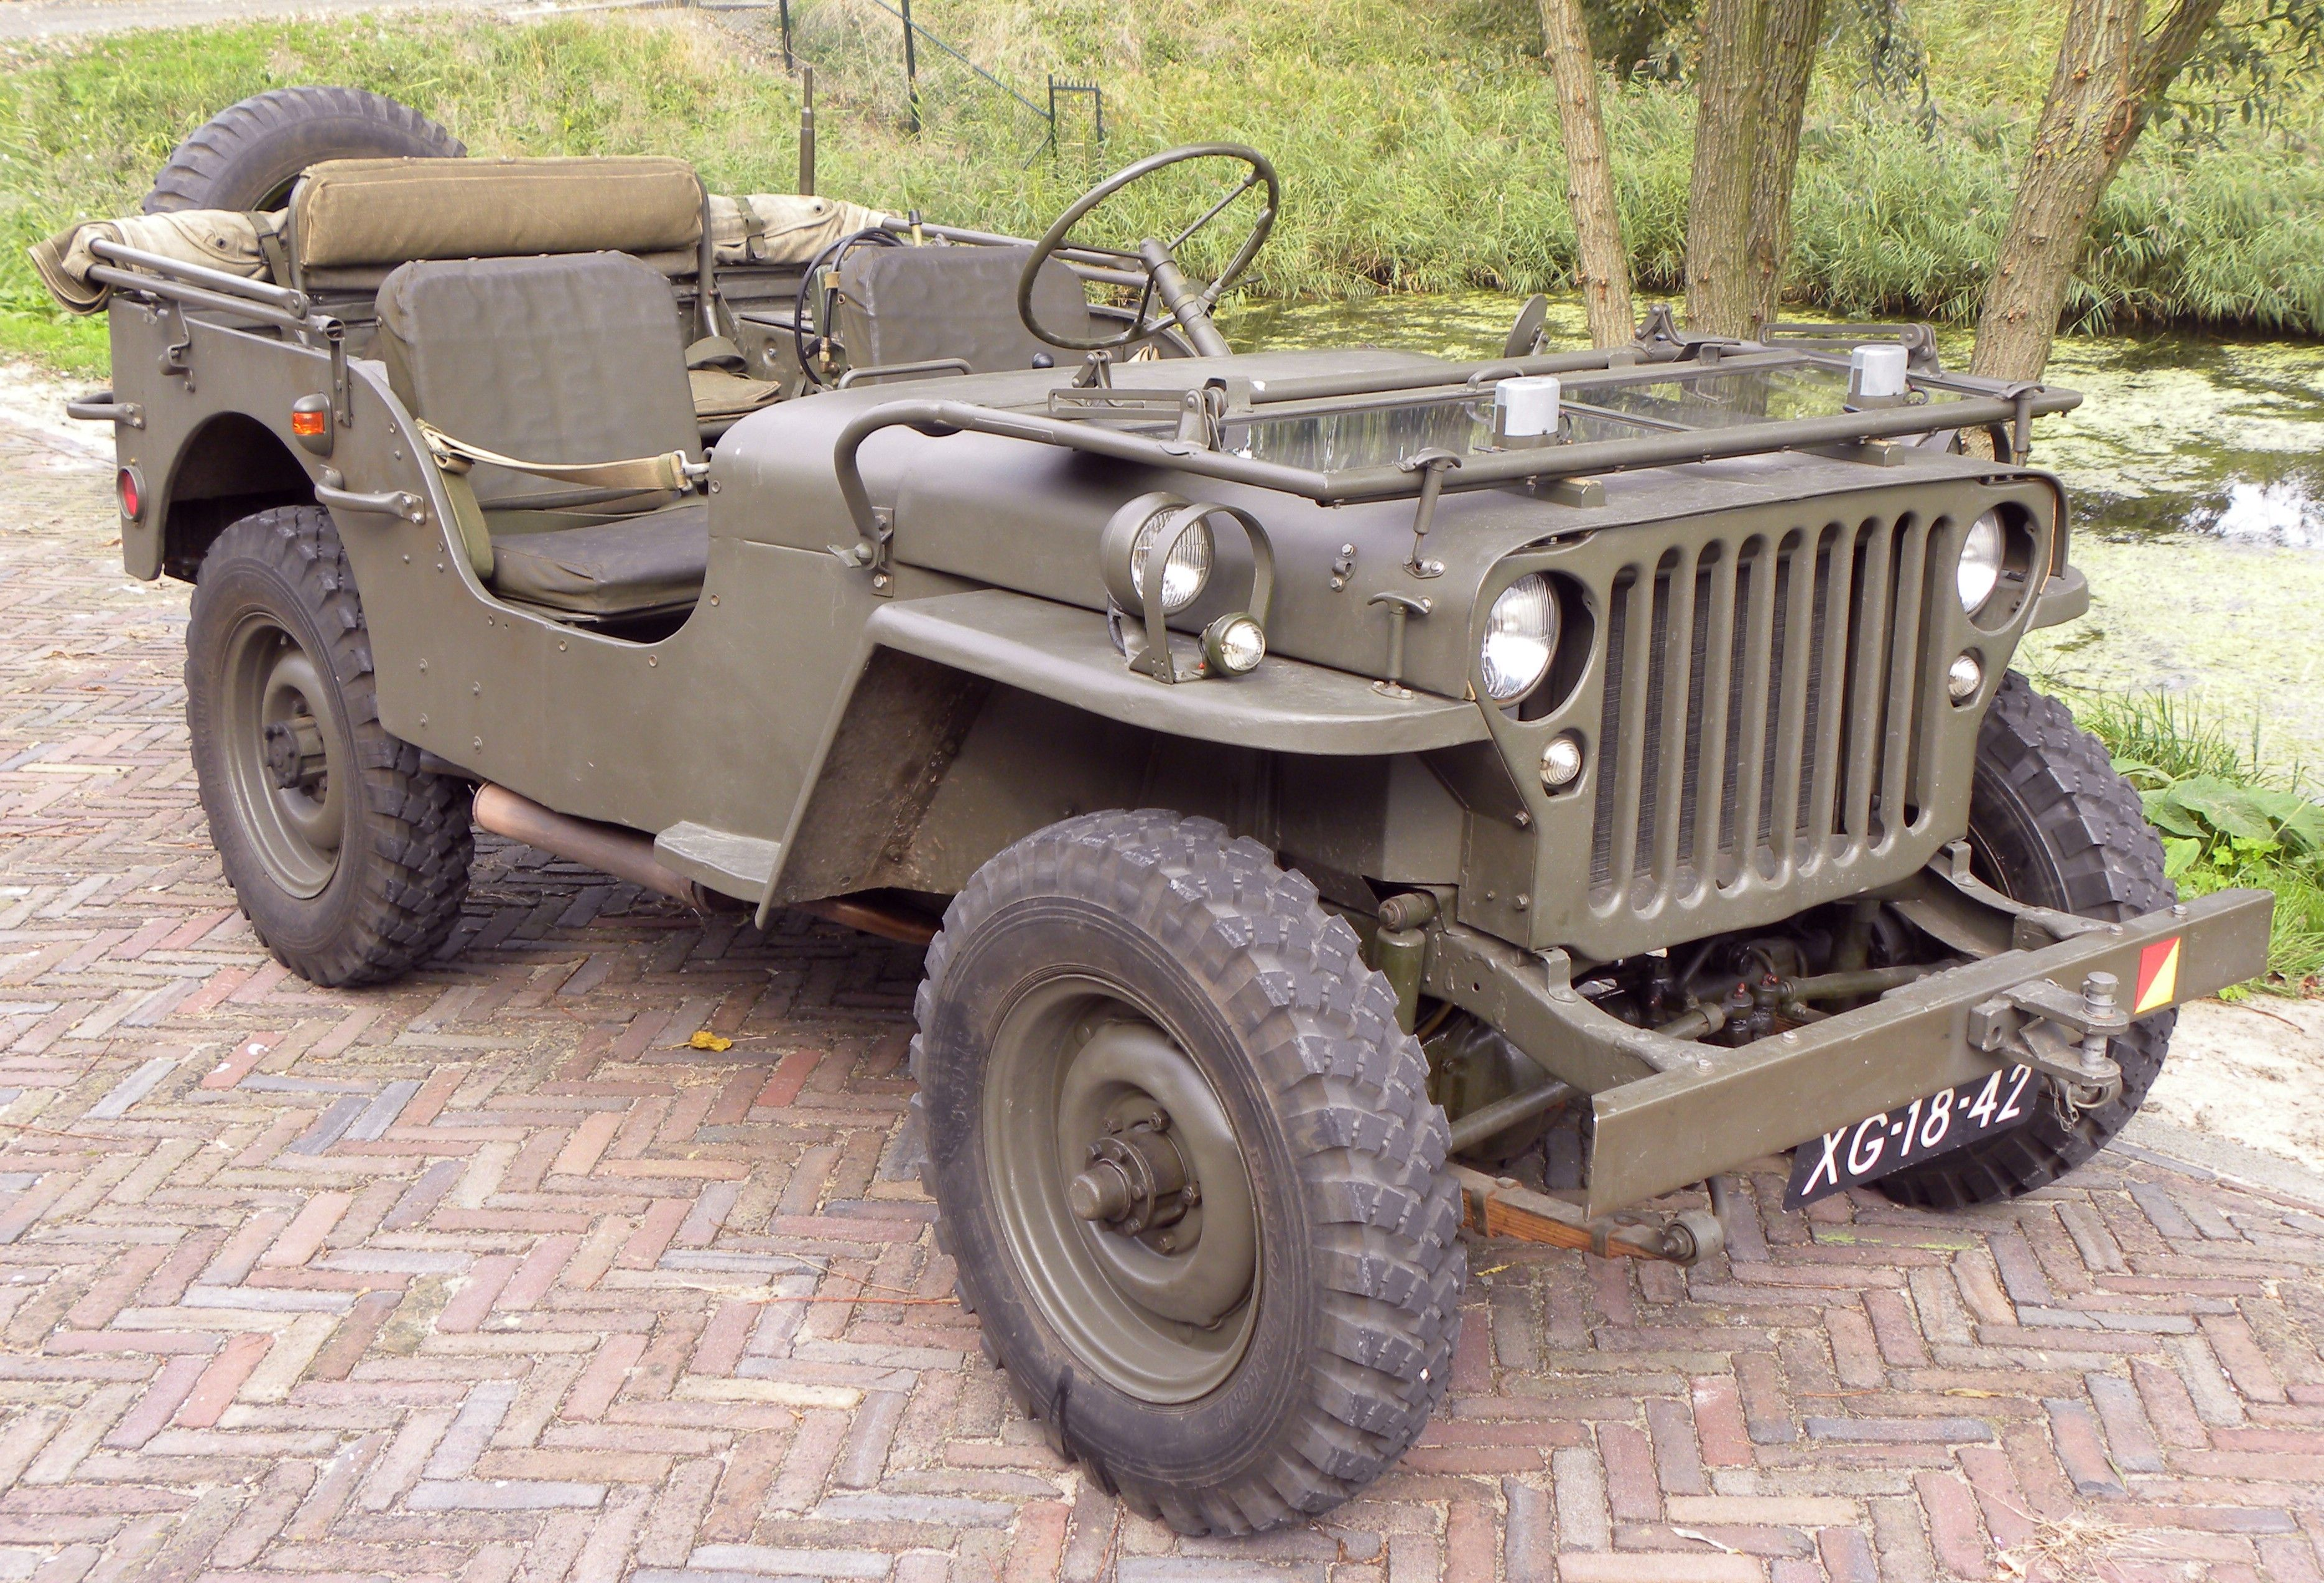 My Grandfather British Royal Signals Drove One Of These Right